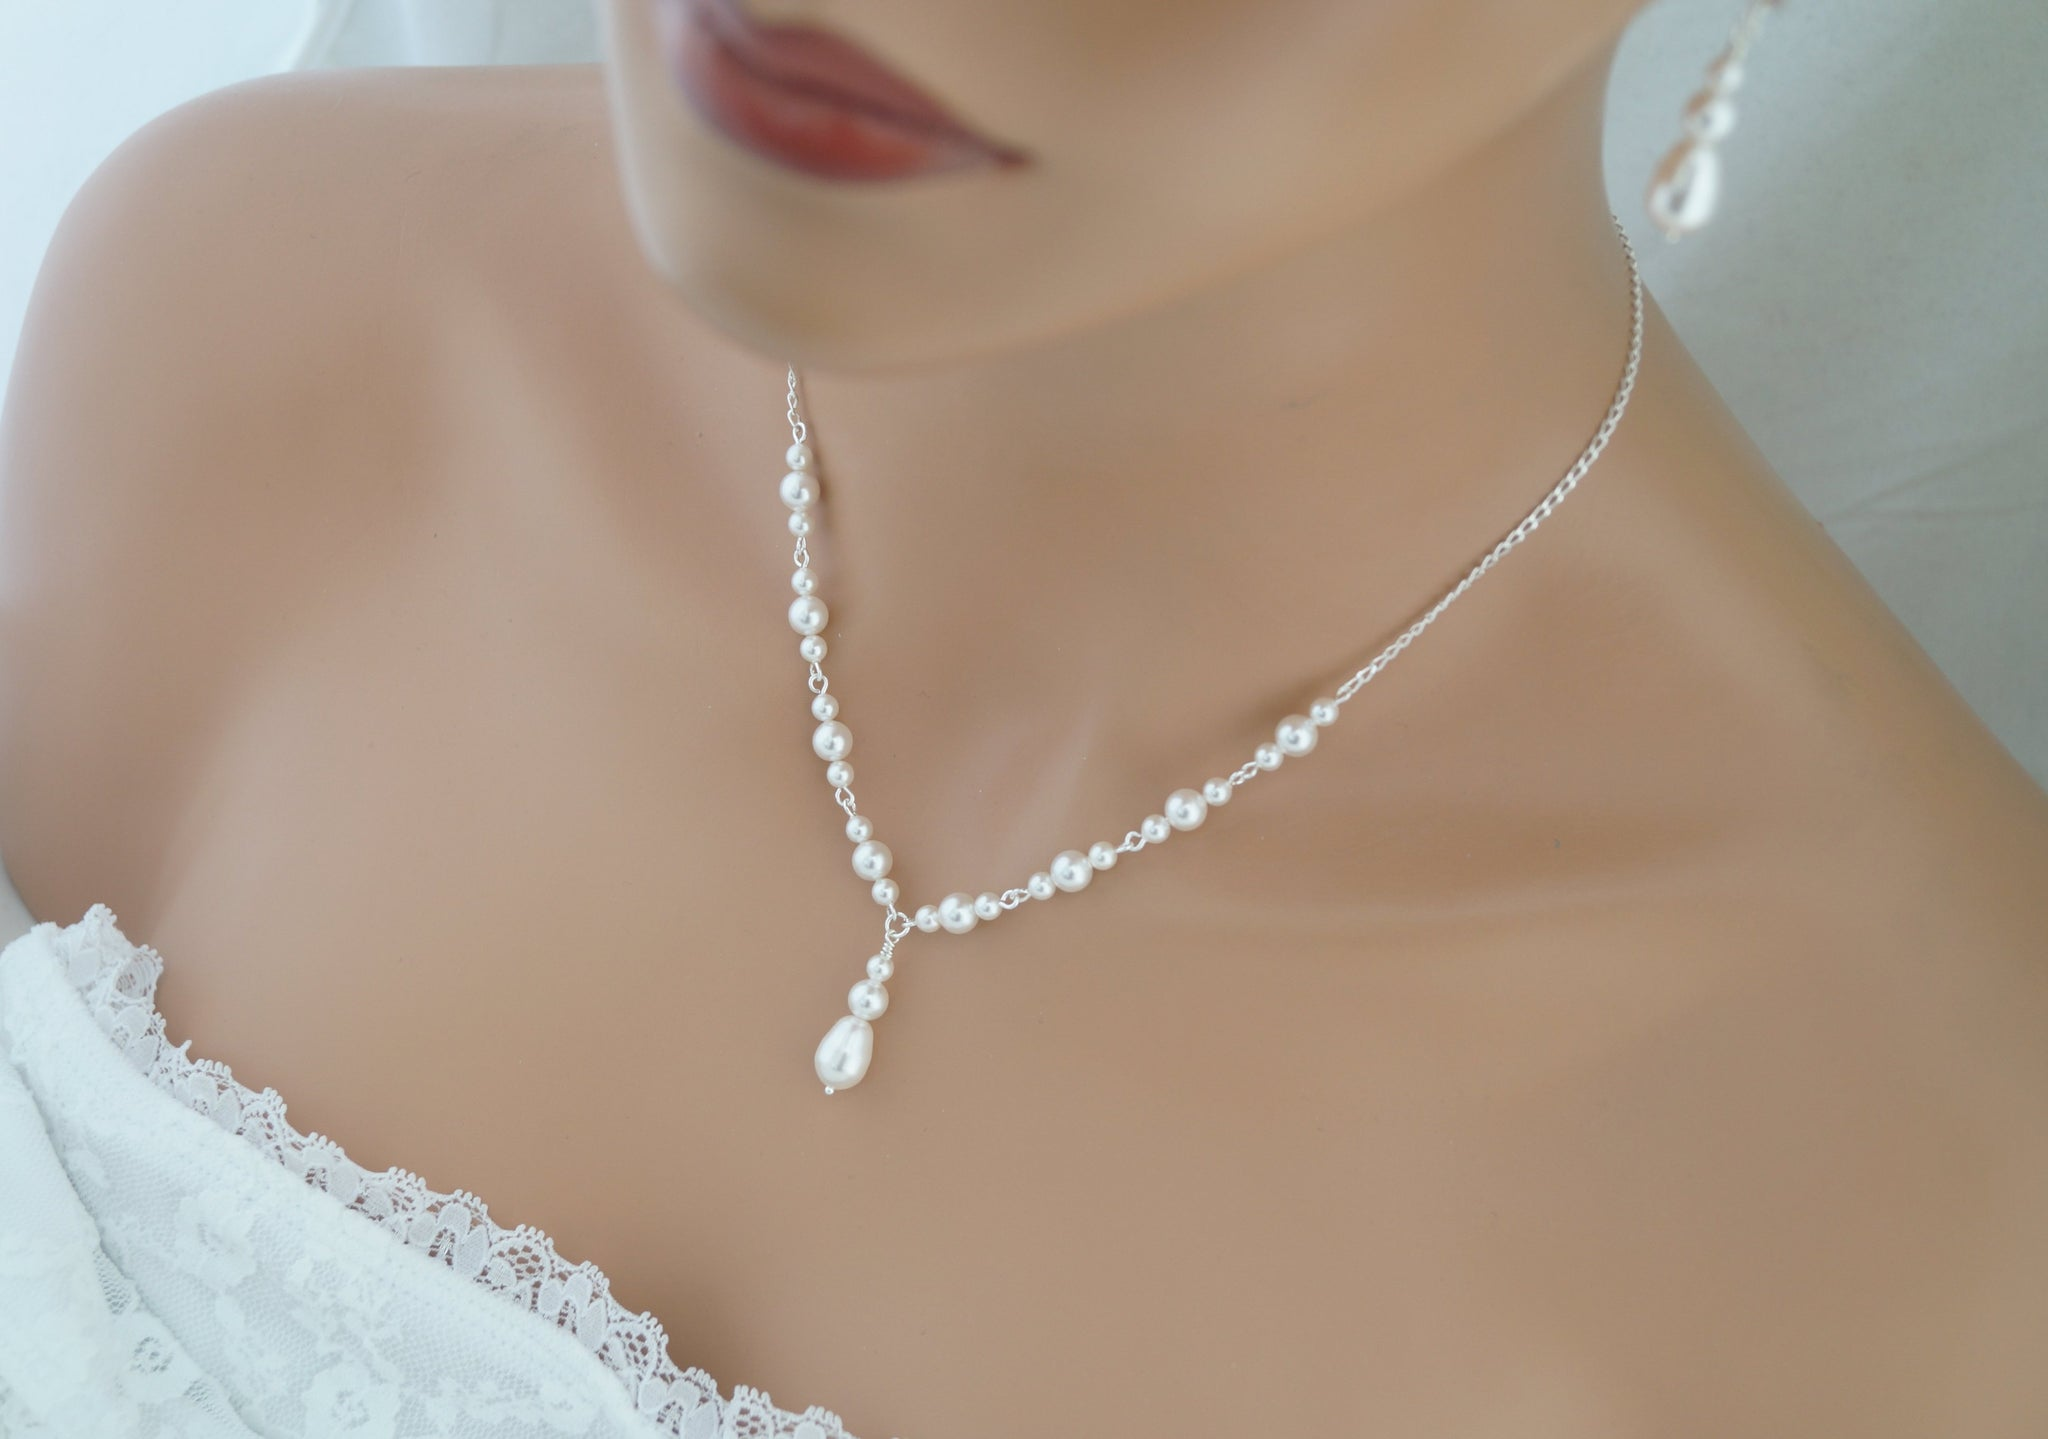 White Pearl Necklace and Earrings Set Wedding Jewelry Set - Clairesbridal - 3